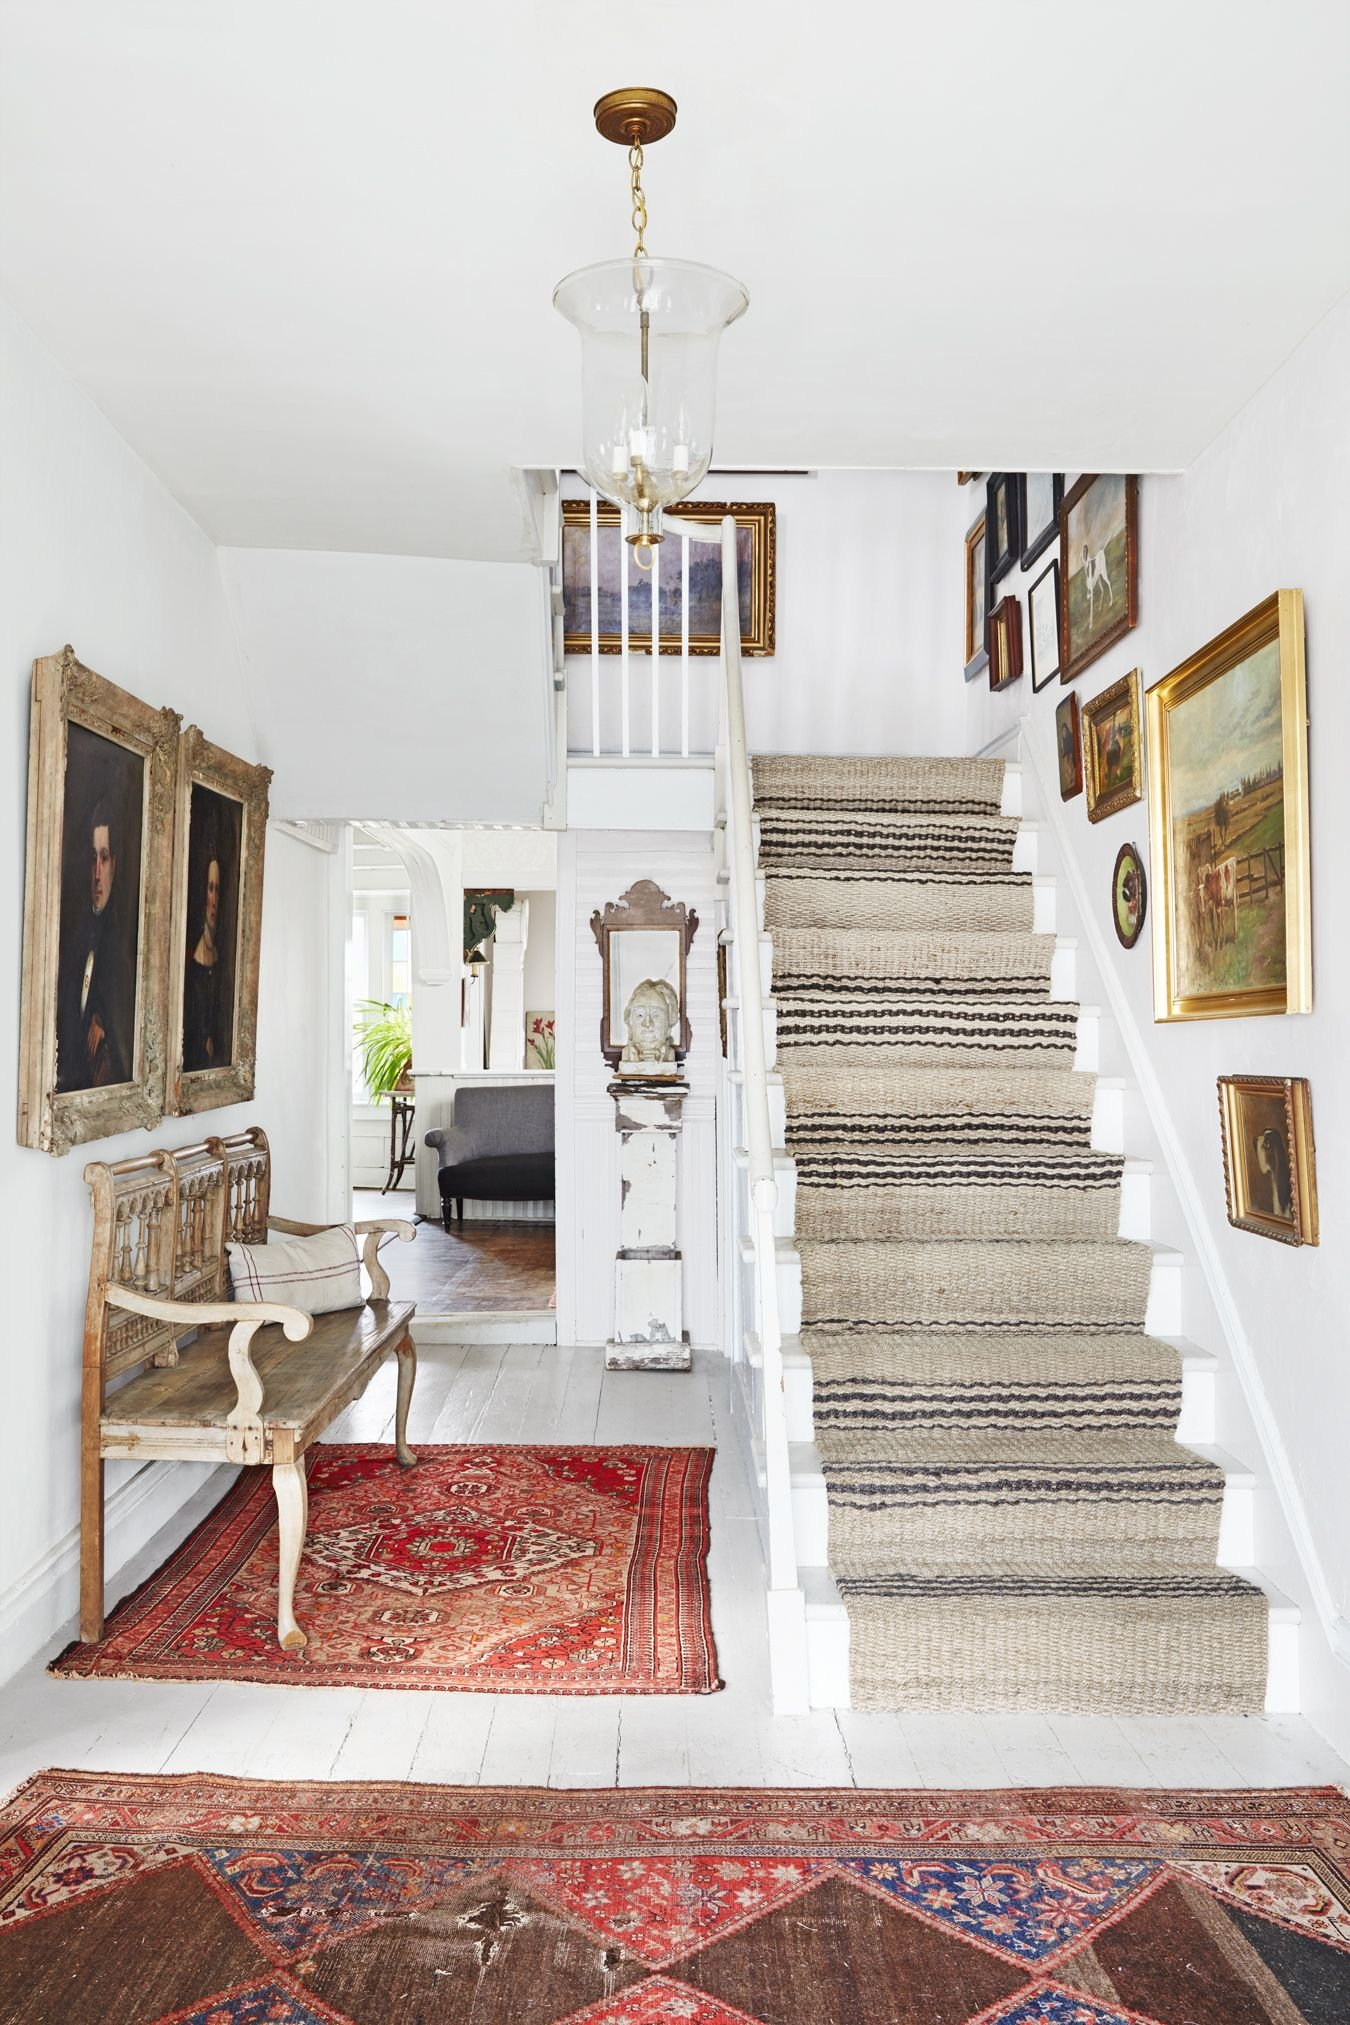 55 Best Staircase Ideas Top Ways To Decorate A Stairway | First Floor Steps Design | Small House | Different Type House | Indoor | In House Construction | Entrance Step